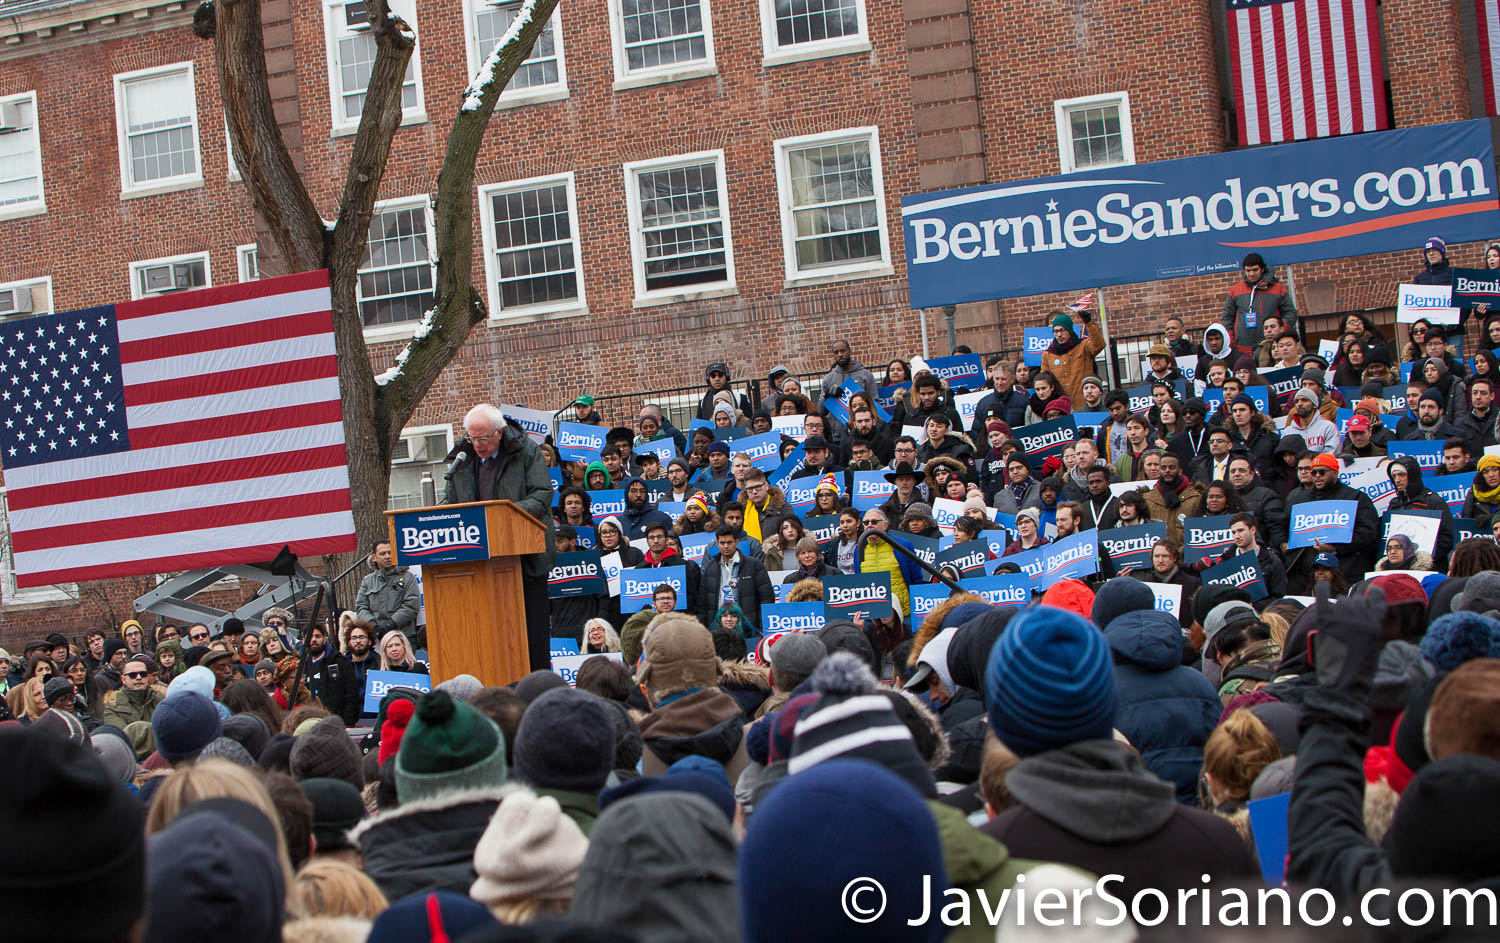 Saturday, March 2, 2019. Brooklyn College. Brooklyn, New York City. U.S. Senator and presidential candidate Bernie Sanders speaks to the more than 10 thousand people at Brooklyn College. This was the first event of his 2020 presidential campaign. And although it was very cold, people were happy to be there. It was a very special moment in the history of our country. Photo by Javier Soriano/www.JavierSoriano.com